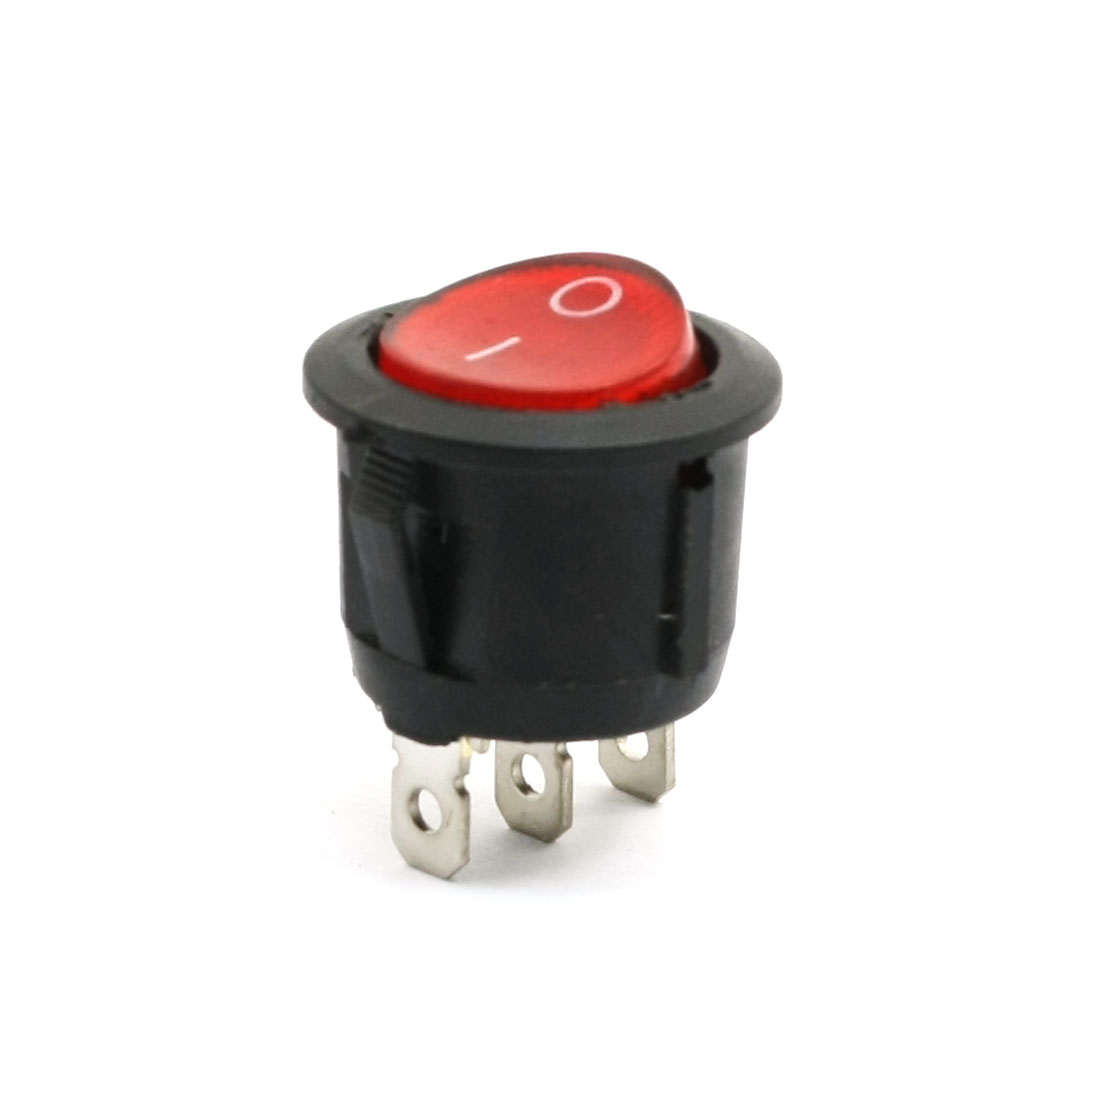 6A 250VAC 10A 125VAC Red Light Indicator SPST 3 Terminal Rocker Switch